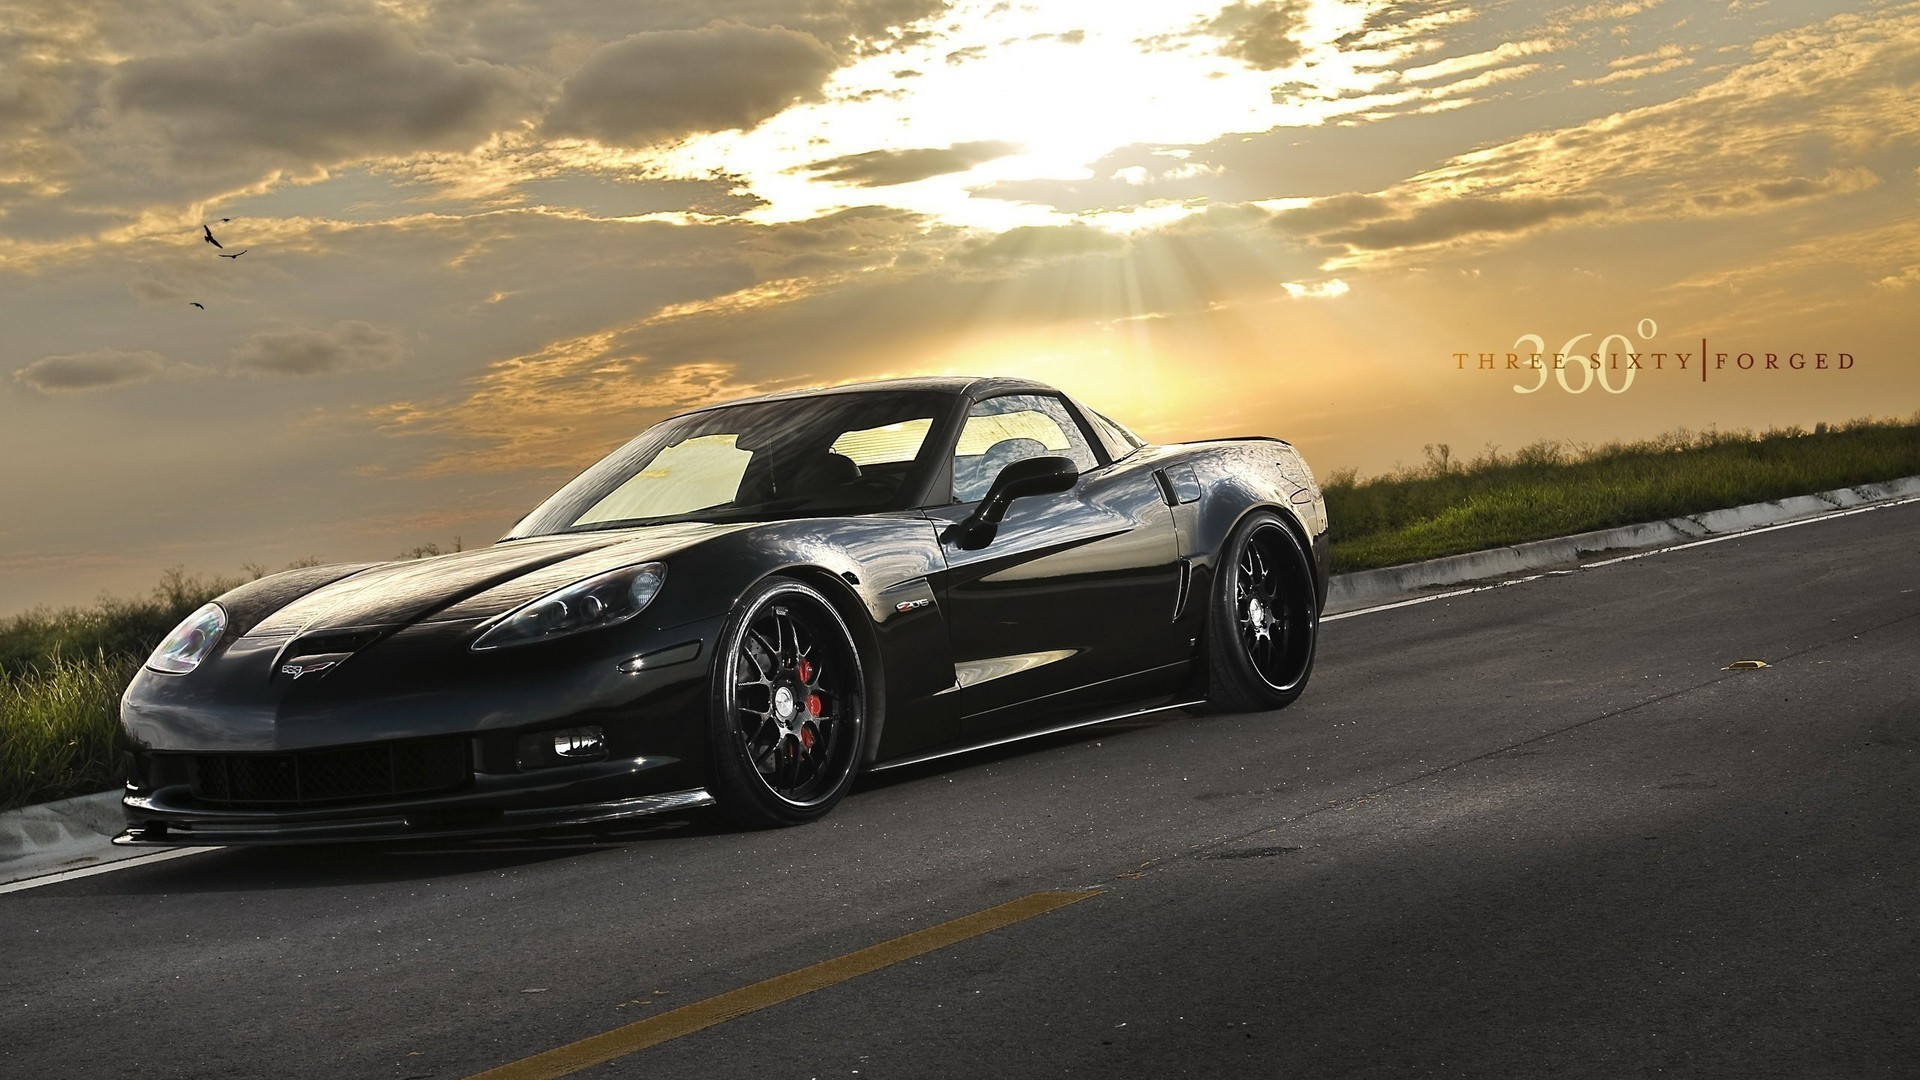 Landscapes cars chevrolet corvette HD Wallpaper